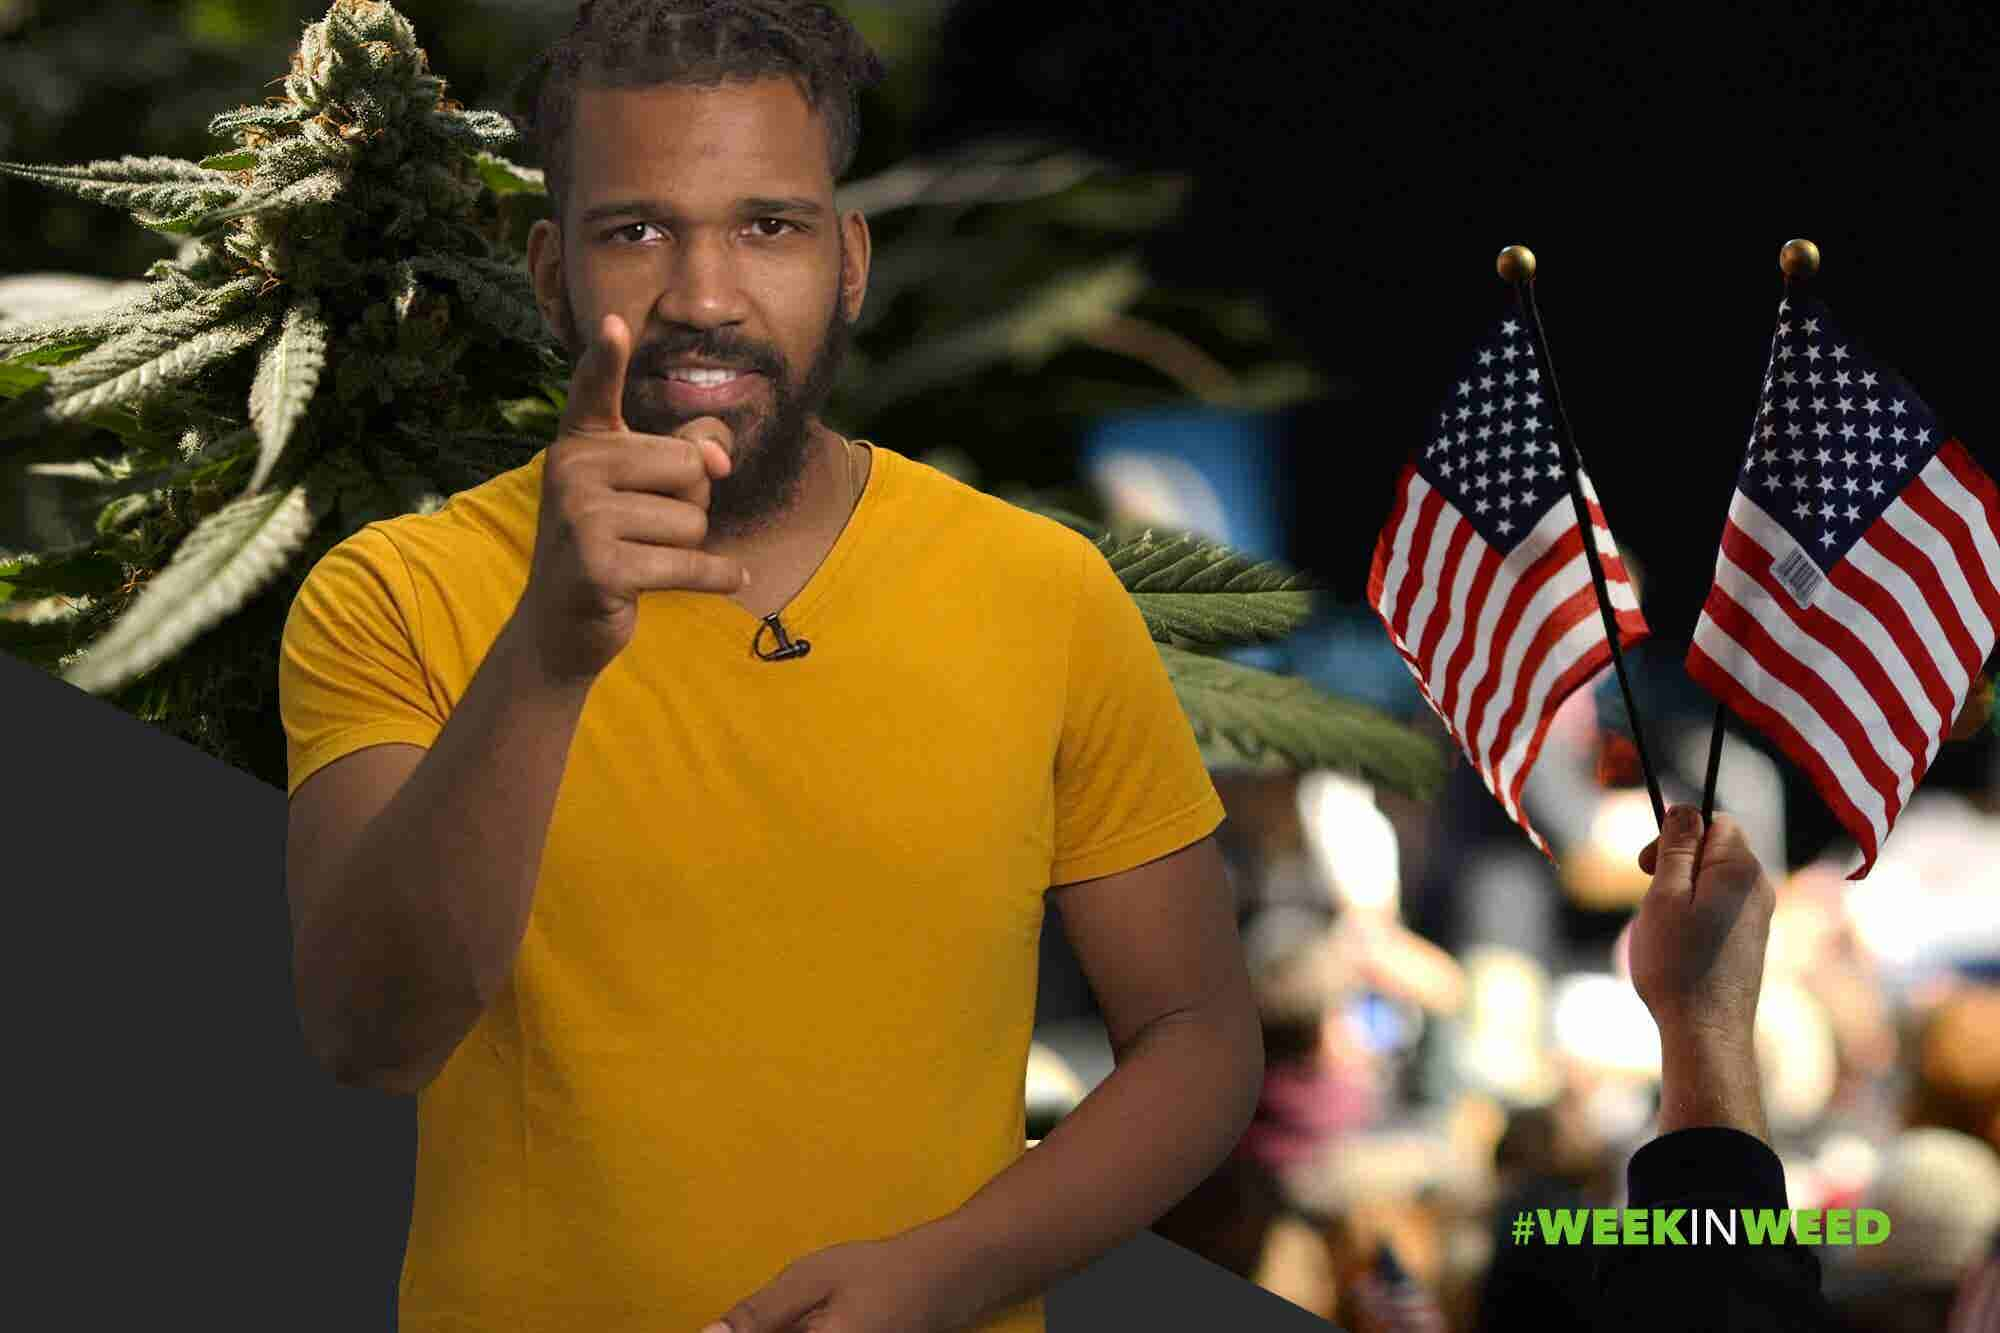 This Week in Weed: Americans Vote on Cannabis!